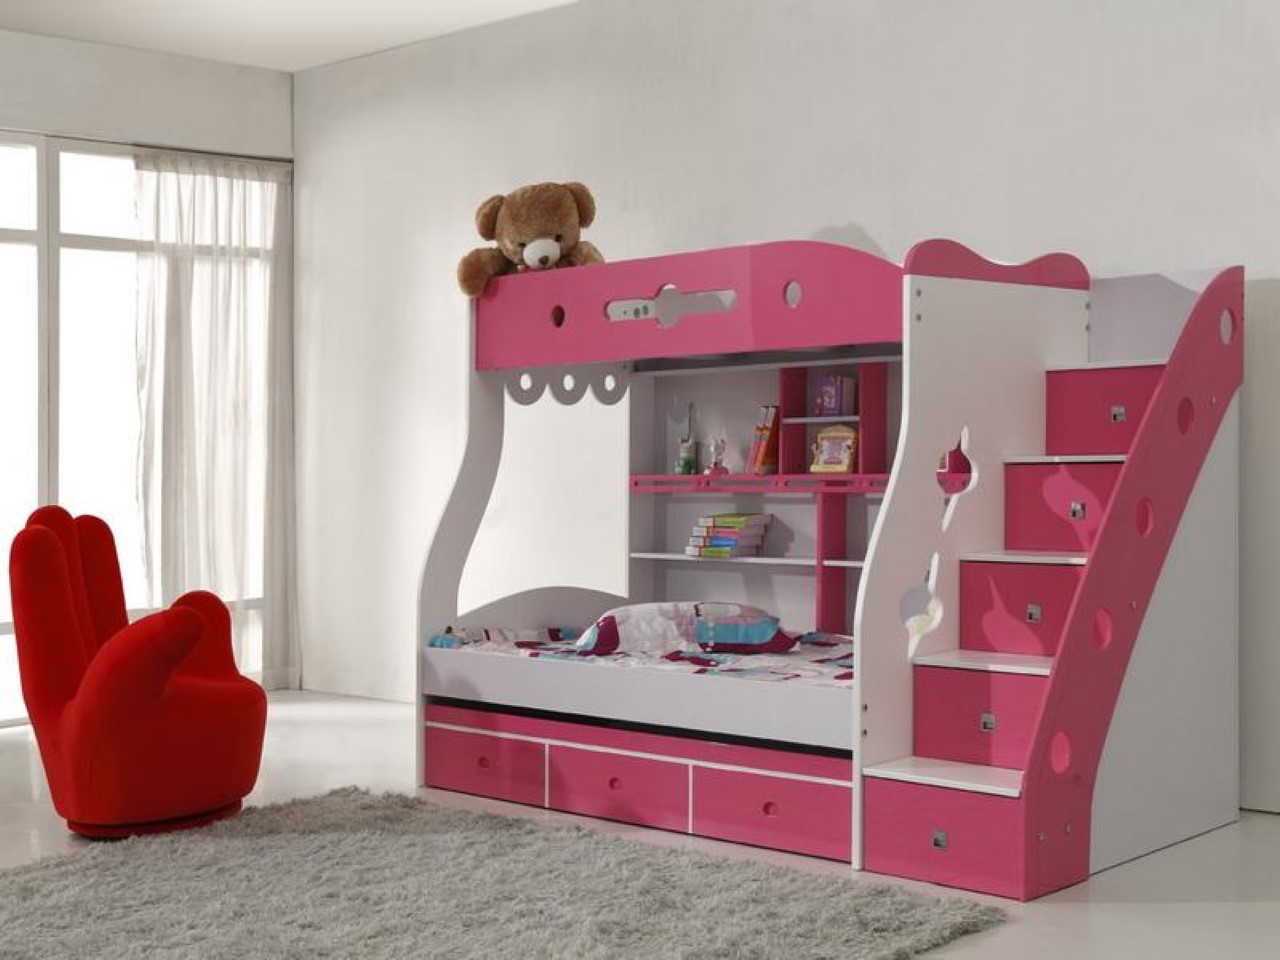 Red Hand Shaped Chair and Pink Bunk Beds for Girls near Grey Carpet Rug on White Flooring